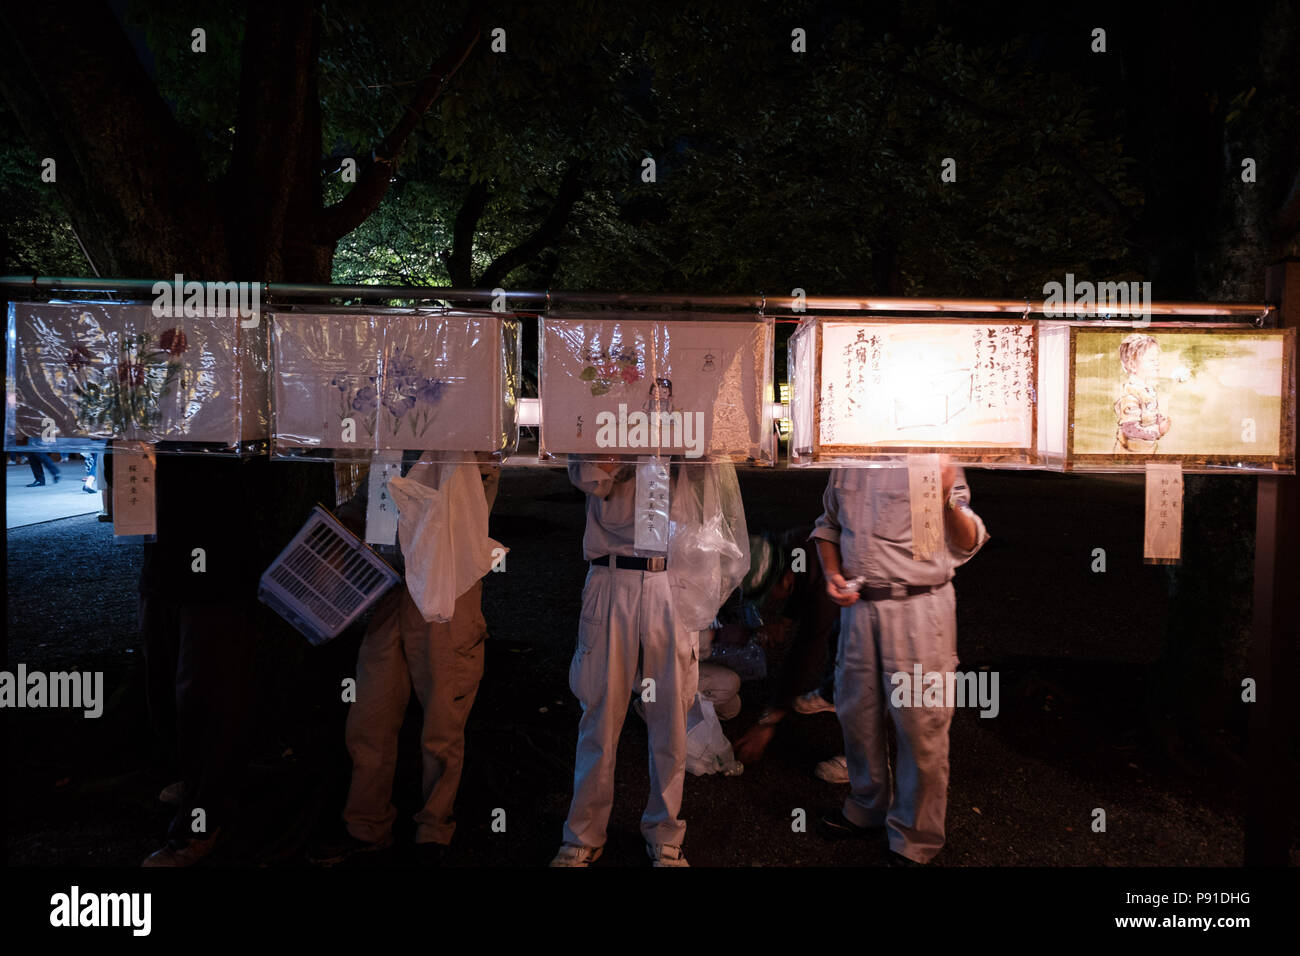 Tokyo, Japan, 13 July 2018. Yasukuni shrine staff changes light bulb of lit paper lanterns during the Mitama Matsuri summer festival at Yasukuni Shrine on July 13, 2018 in Tokyo, Japan. The four-day traditional festival takes place during Tokyo's Bon period in July attracting about 300,000 visitors, according to the shrine. July 13, 2018 Credit: Nicolas Datiche/AFLO/Alamy Live News - Stock Image